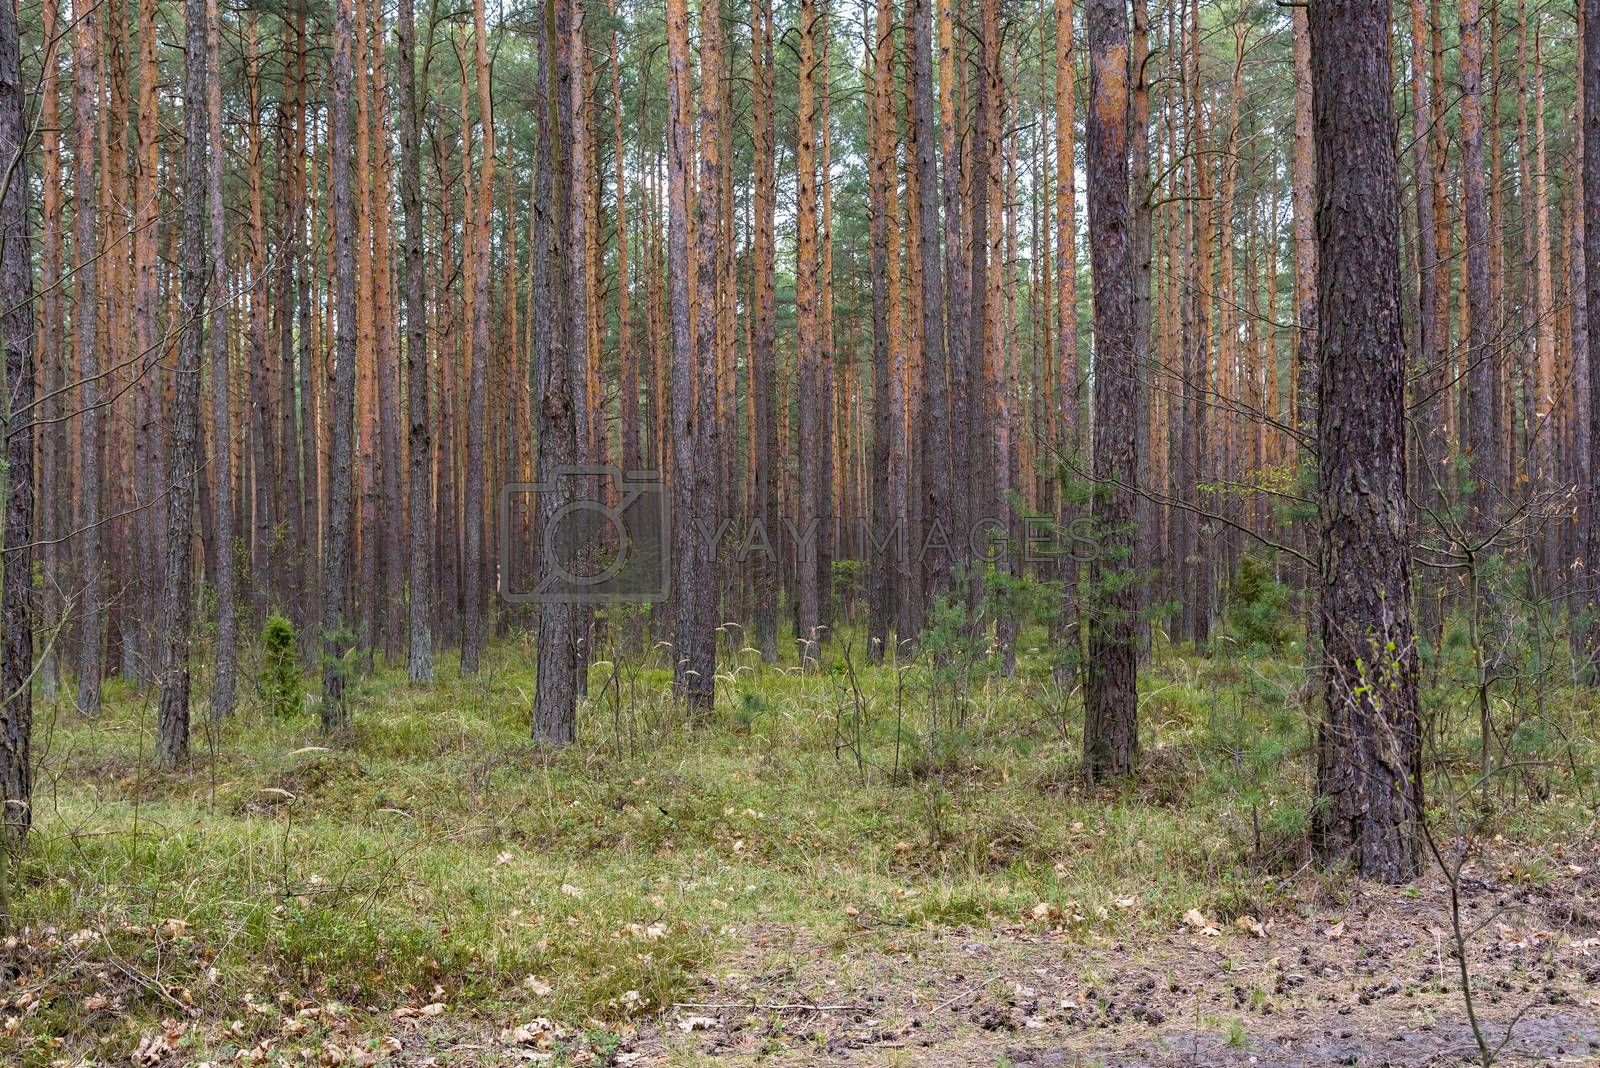 Spring view of pine forest in Poland as natural background